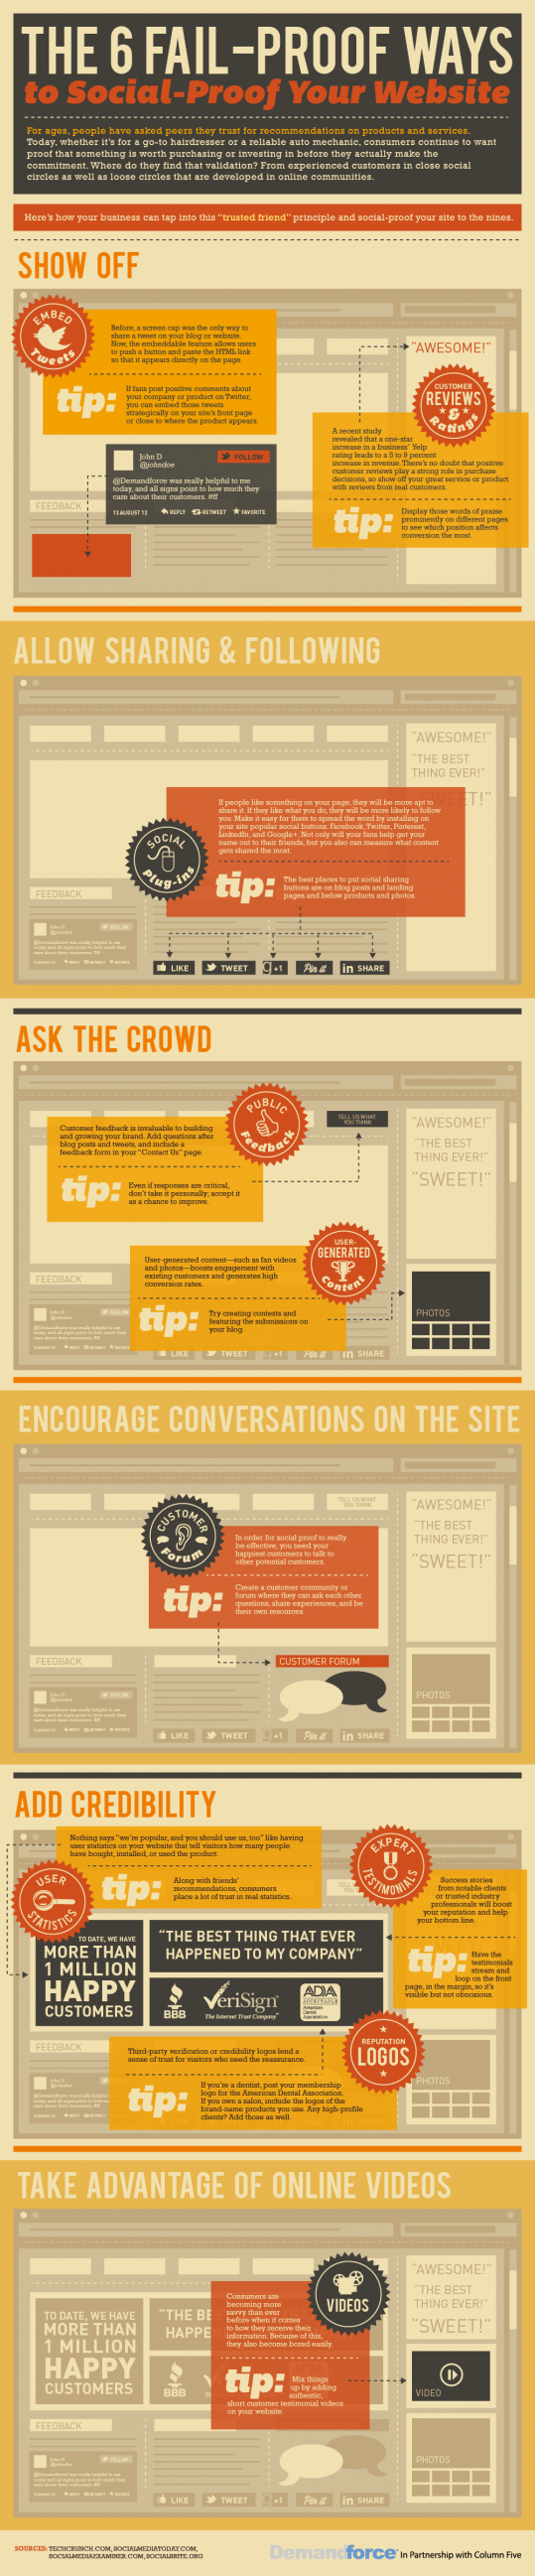 6 Ways To Social Proof Your Website